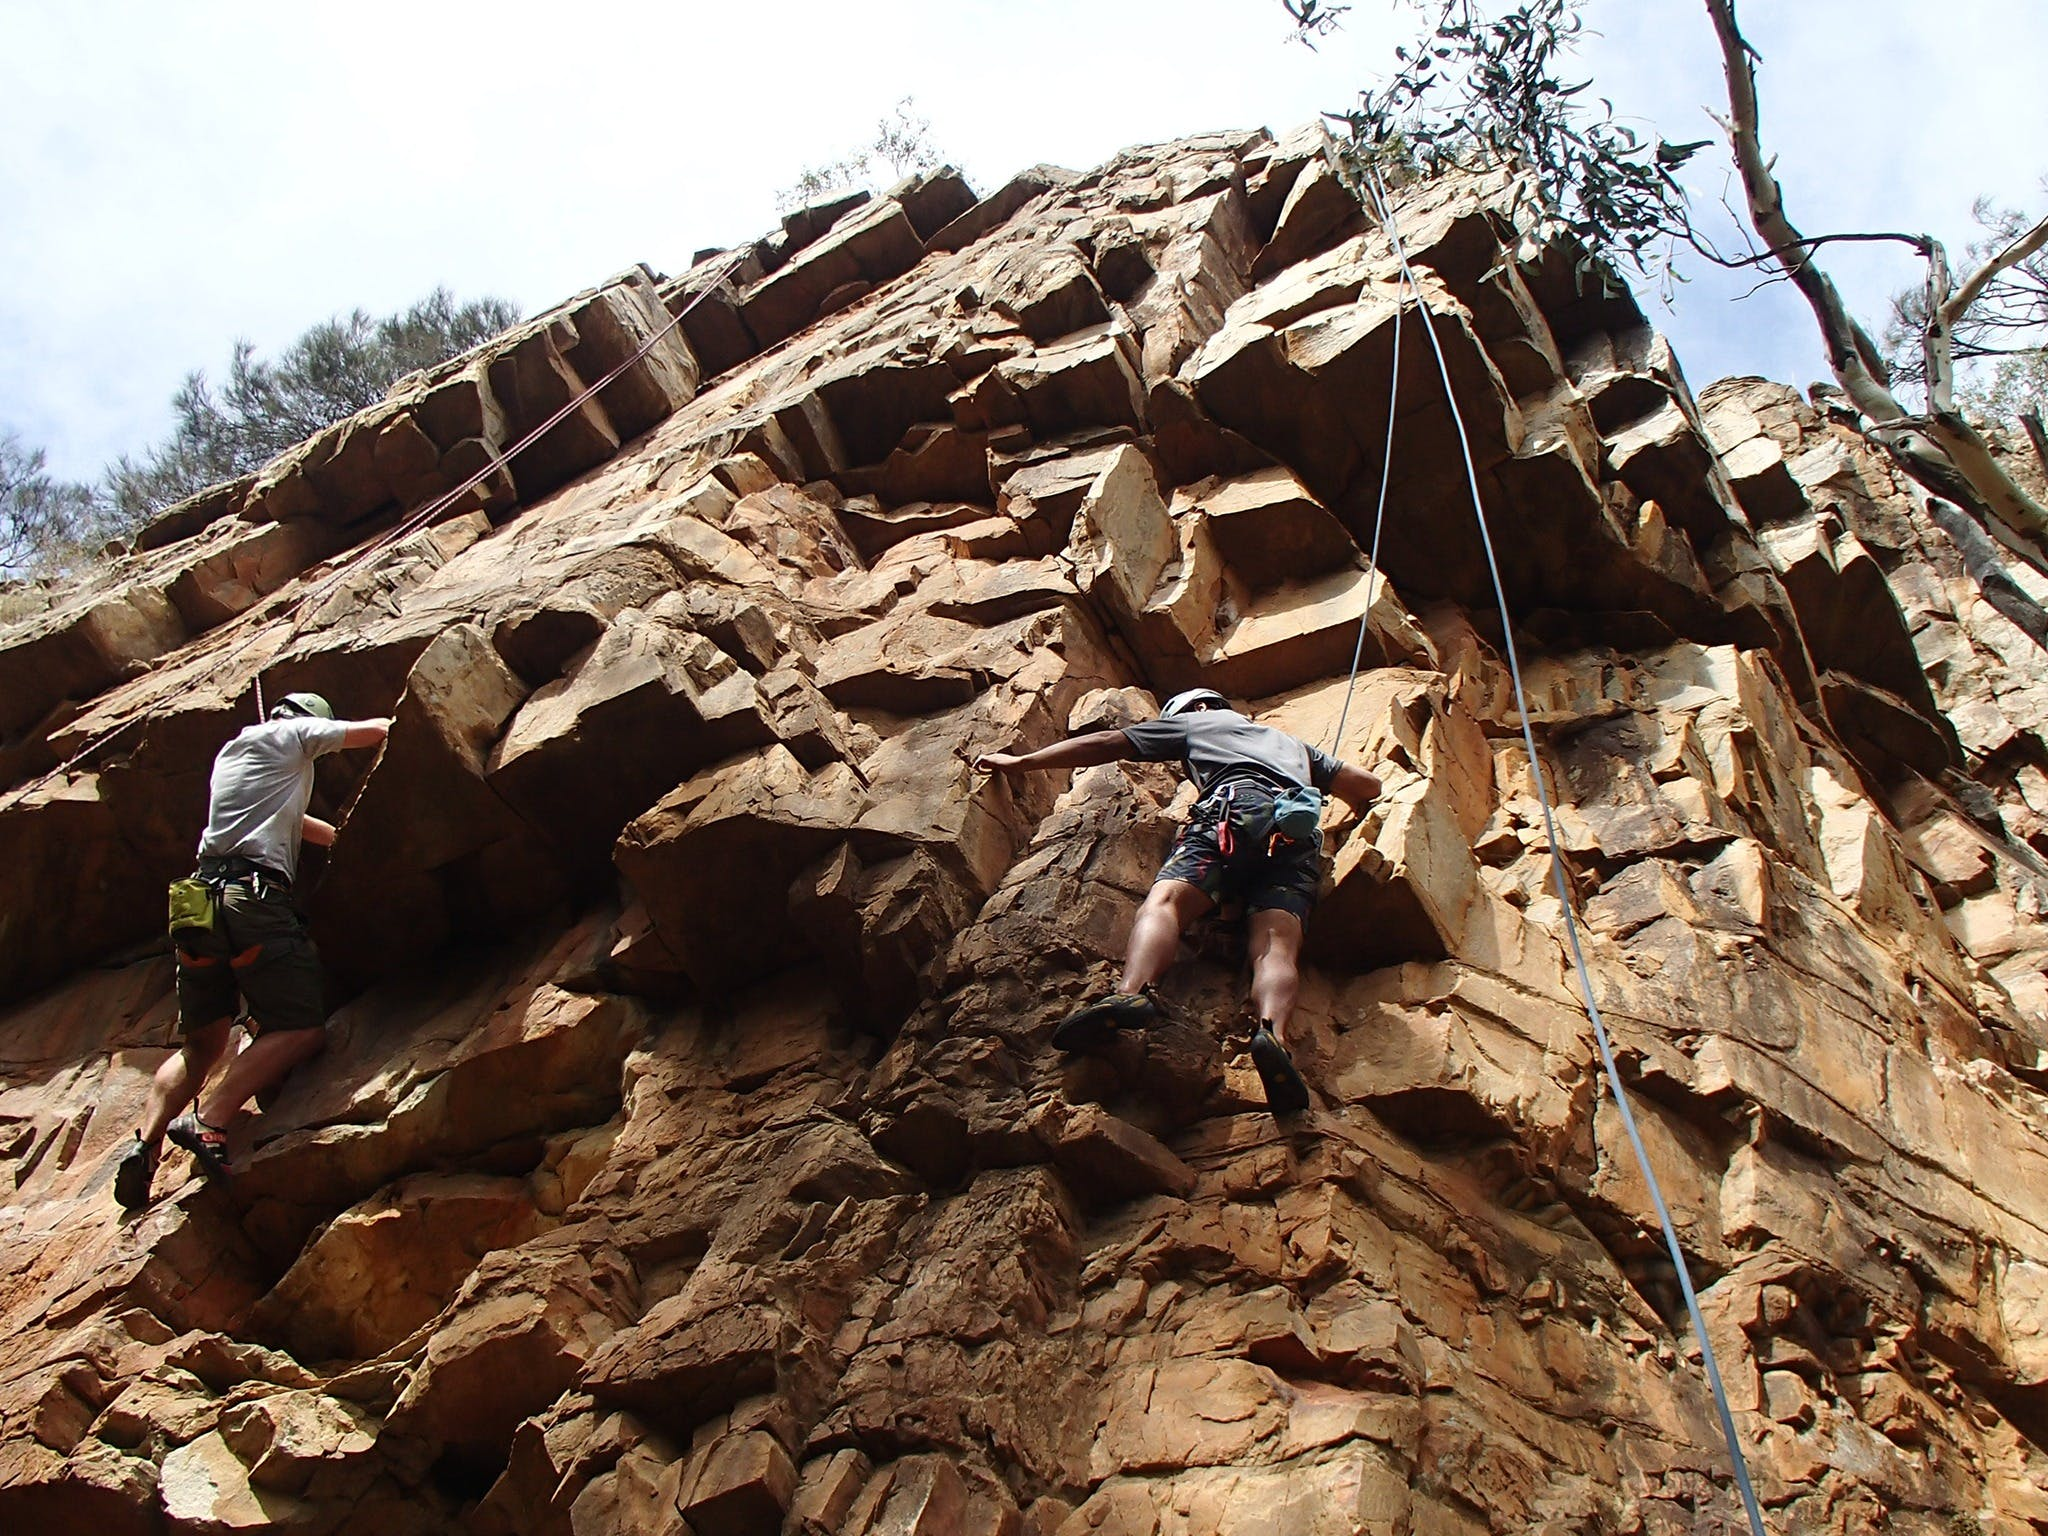 Rock Climbing in Morialta